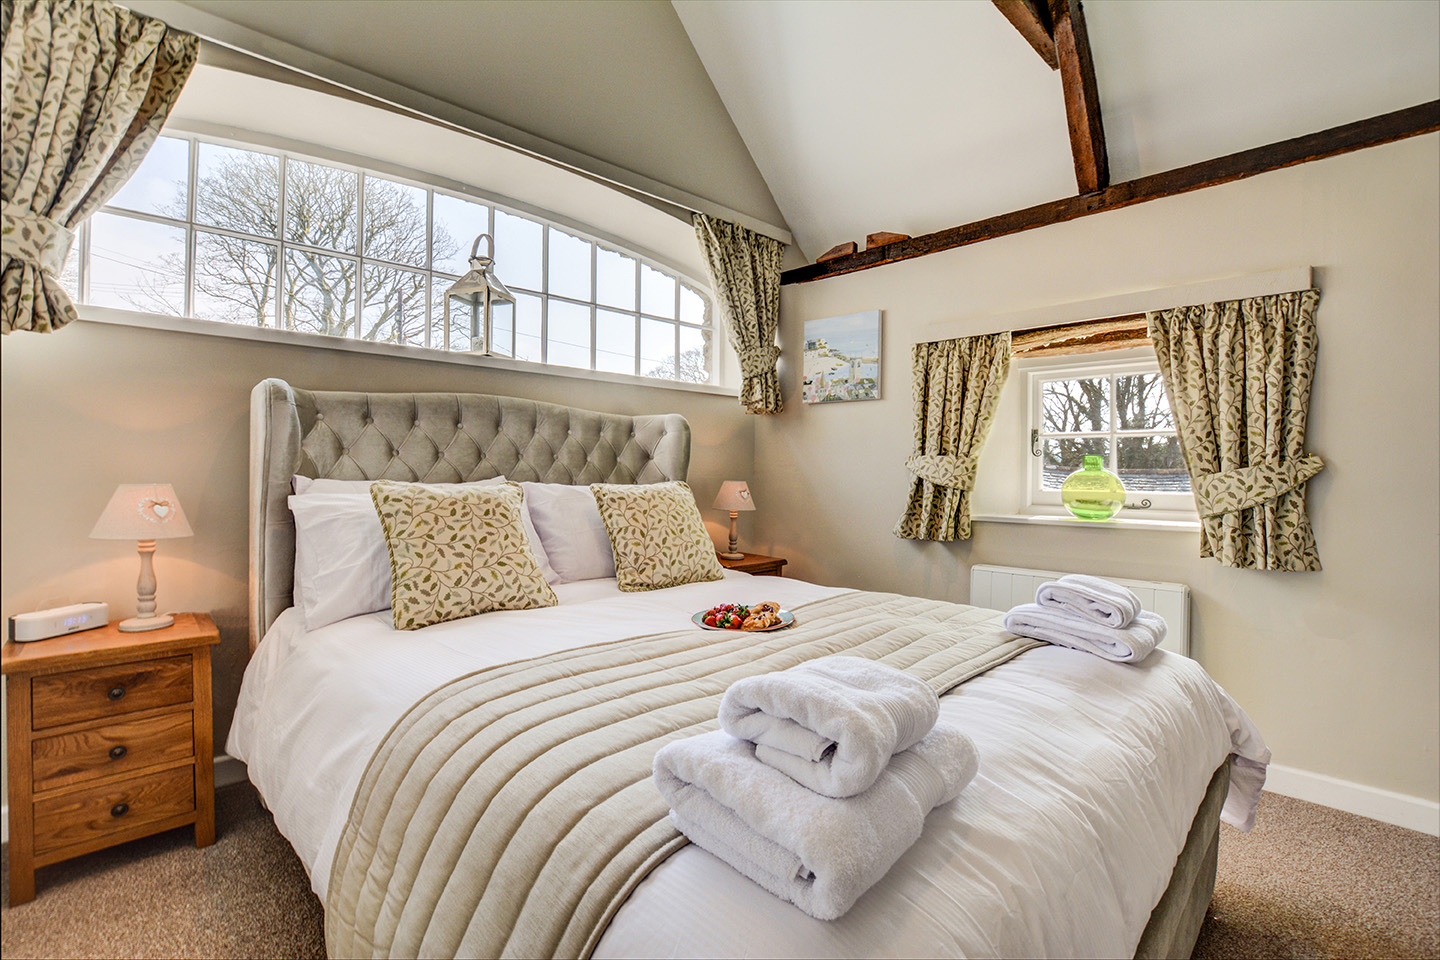 The bedroom at Jingles luxury self catering holiday cottage at Penrose Burden in North Cornwall near Bodmin Moor02.jpg